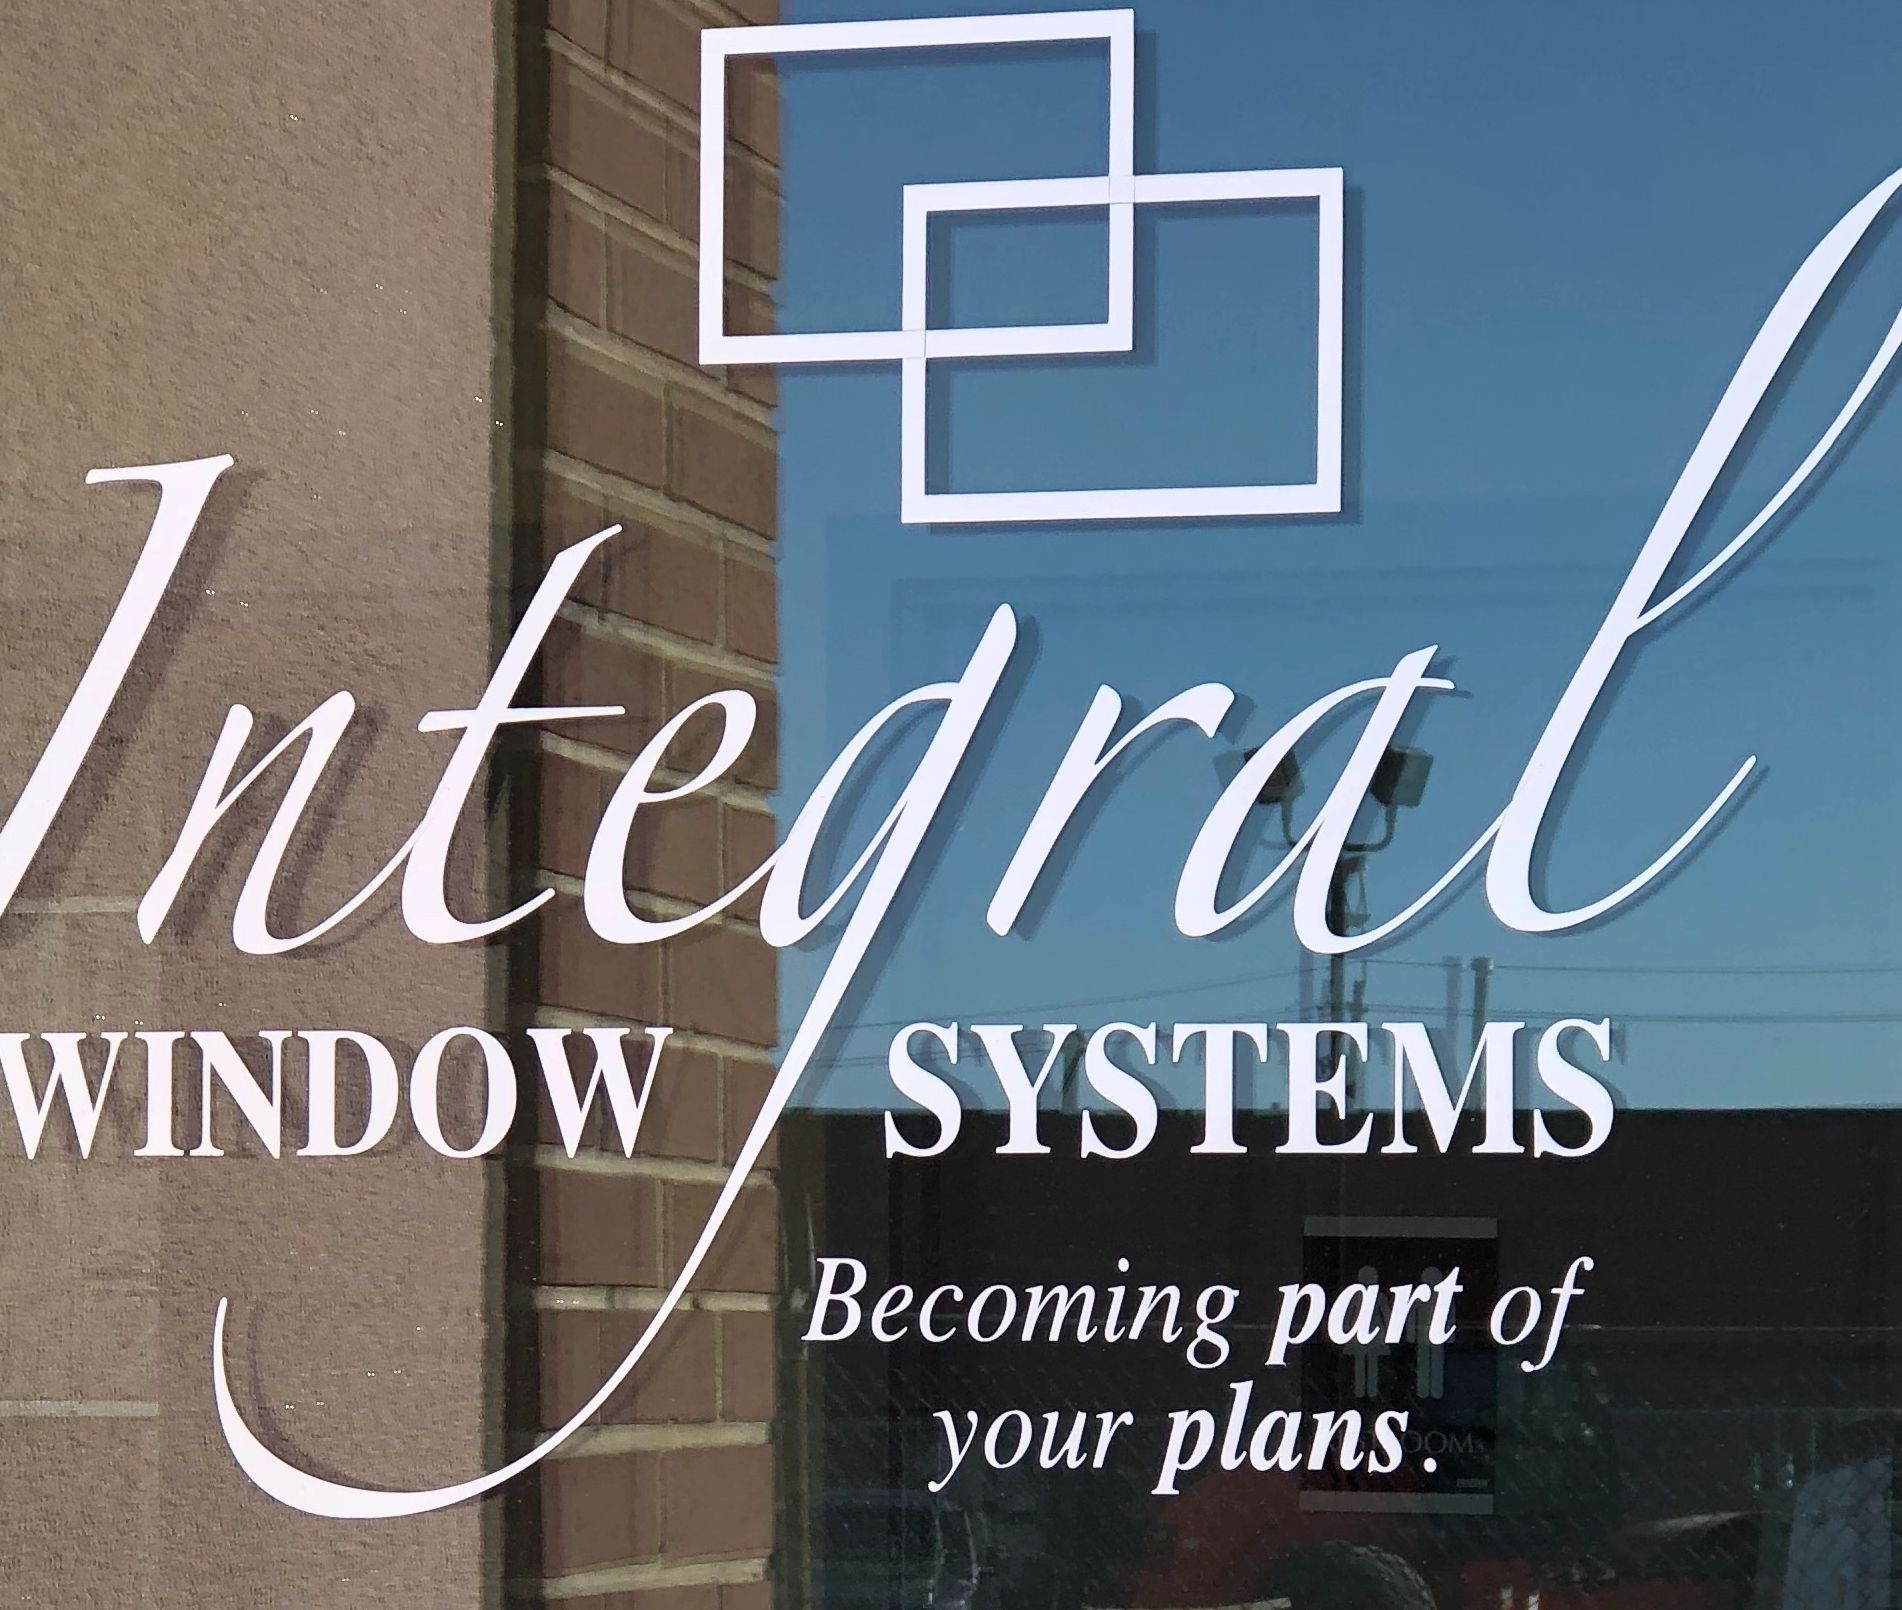 Integral Window Systems